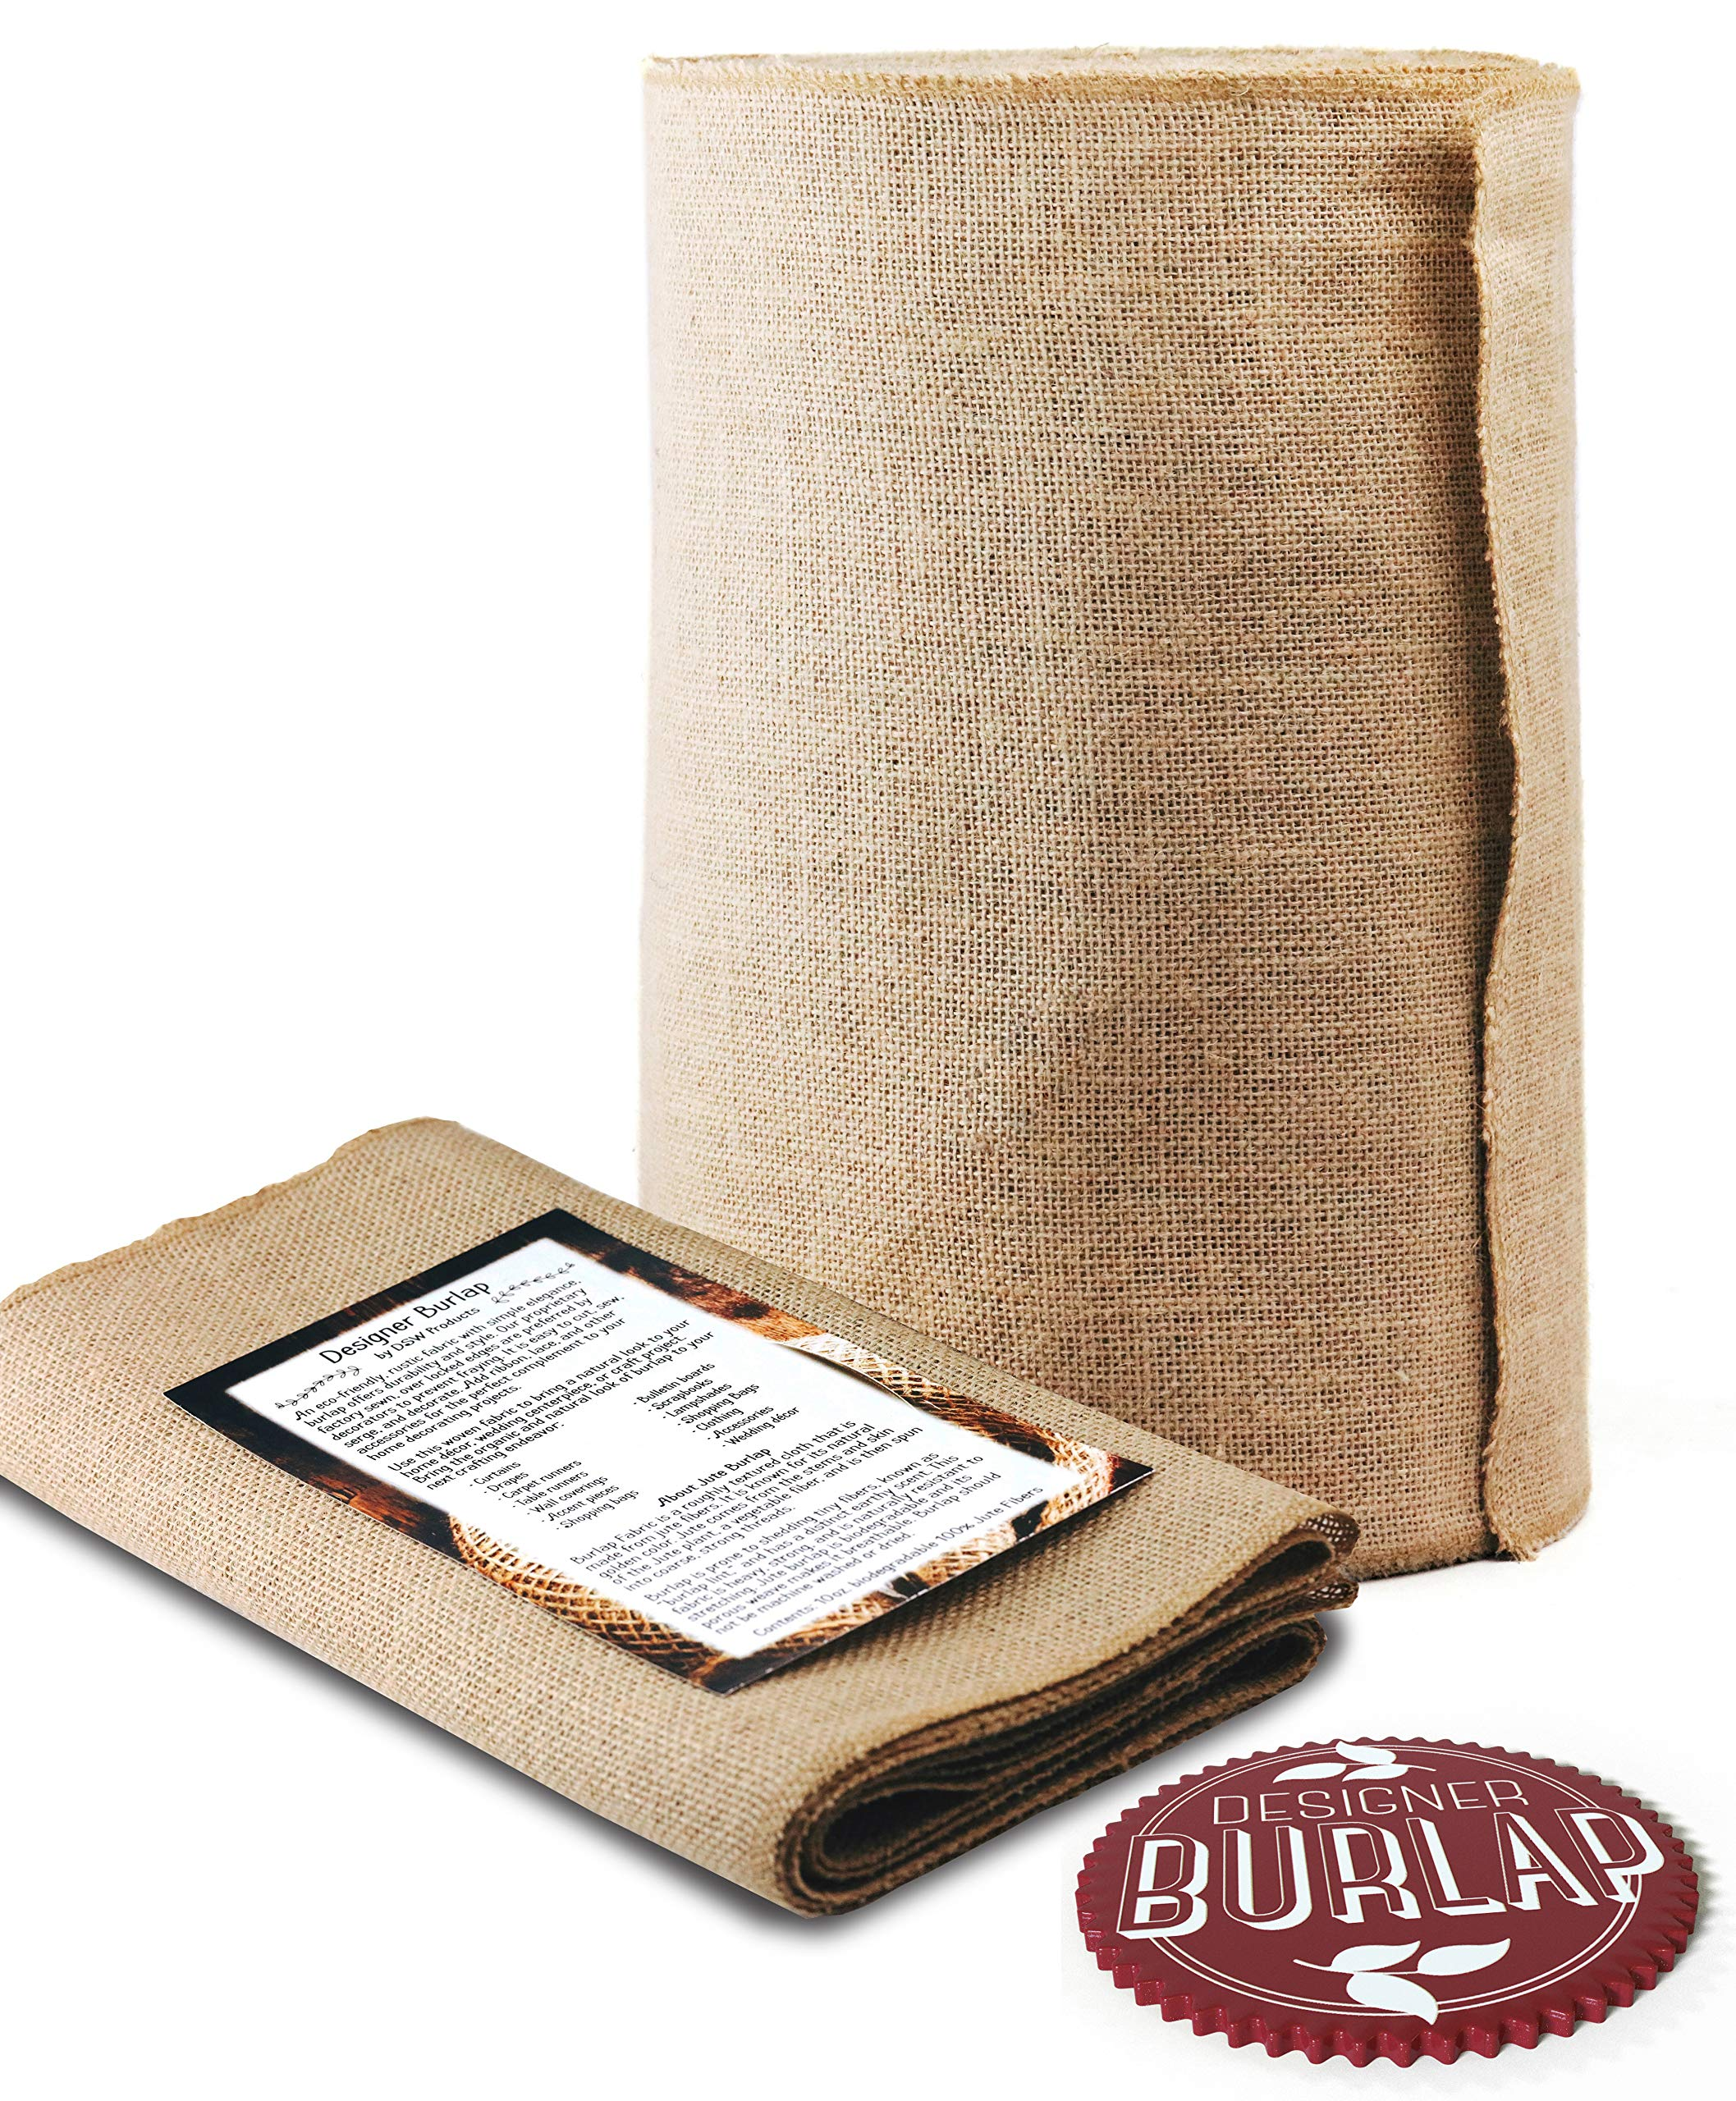 Burlap Table Runner Roll - 14'' Wide x 50 Yards Long. NO-FRAY with FINISHED Edges. Burlap Fabric Roll Perfect for Weddings, Table-Runners, Decorations & Crafts. Decorate Without Mess.